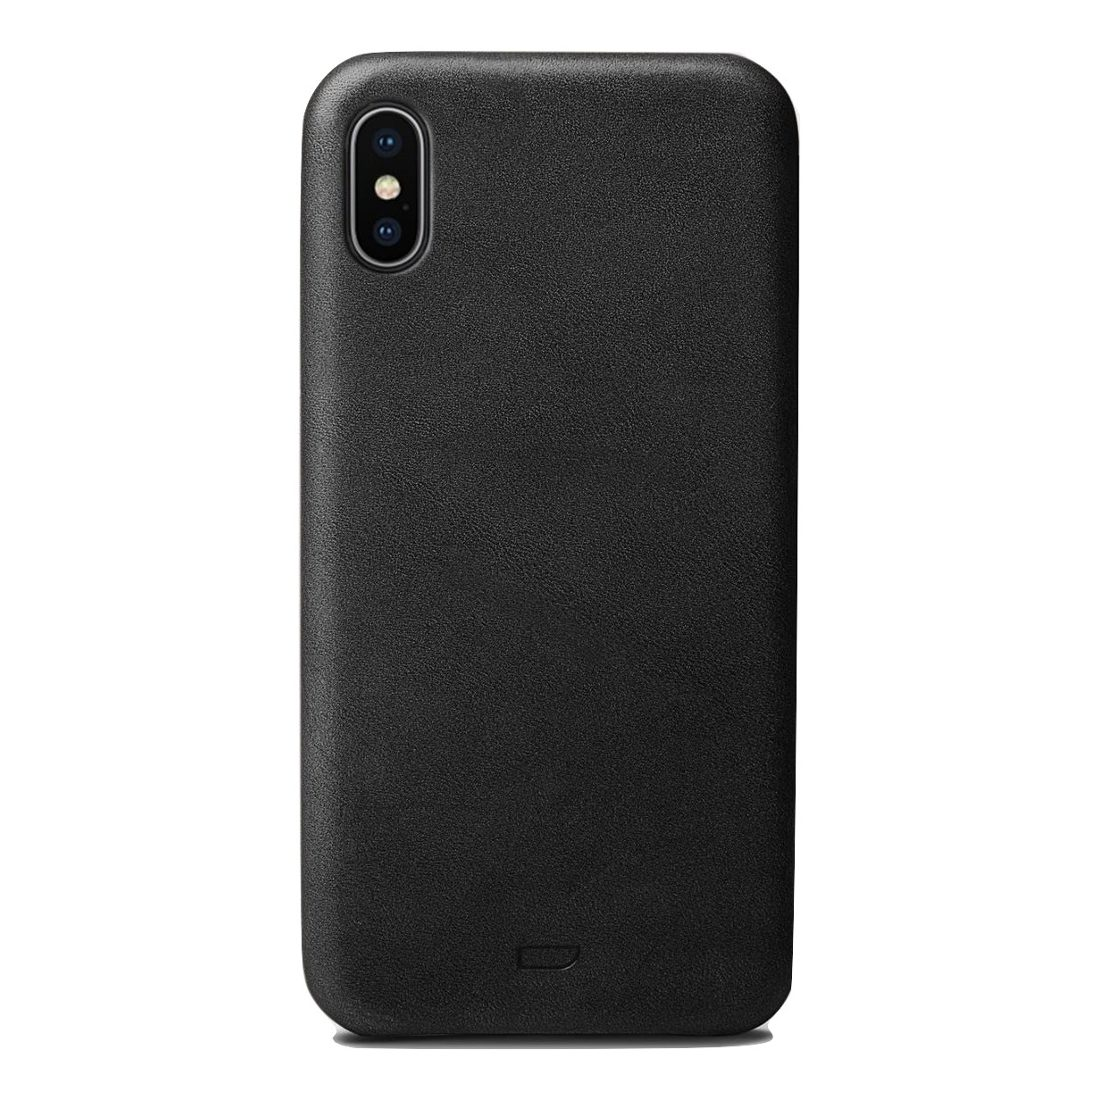 1-carl-friedrik-iphone-x-case-back-black_burned